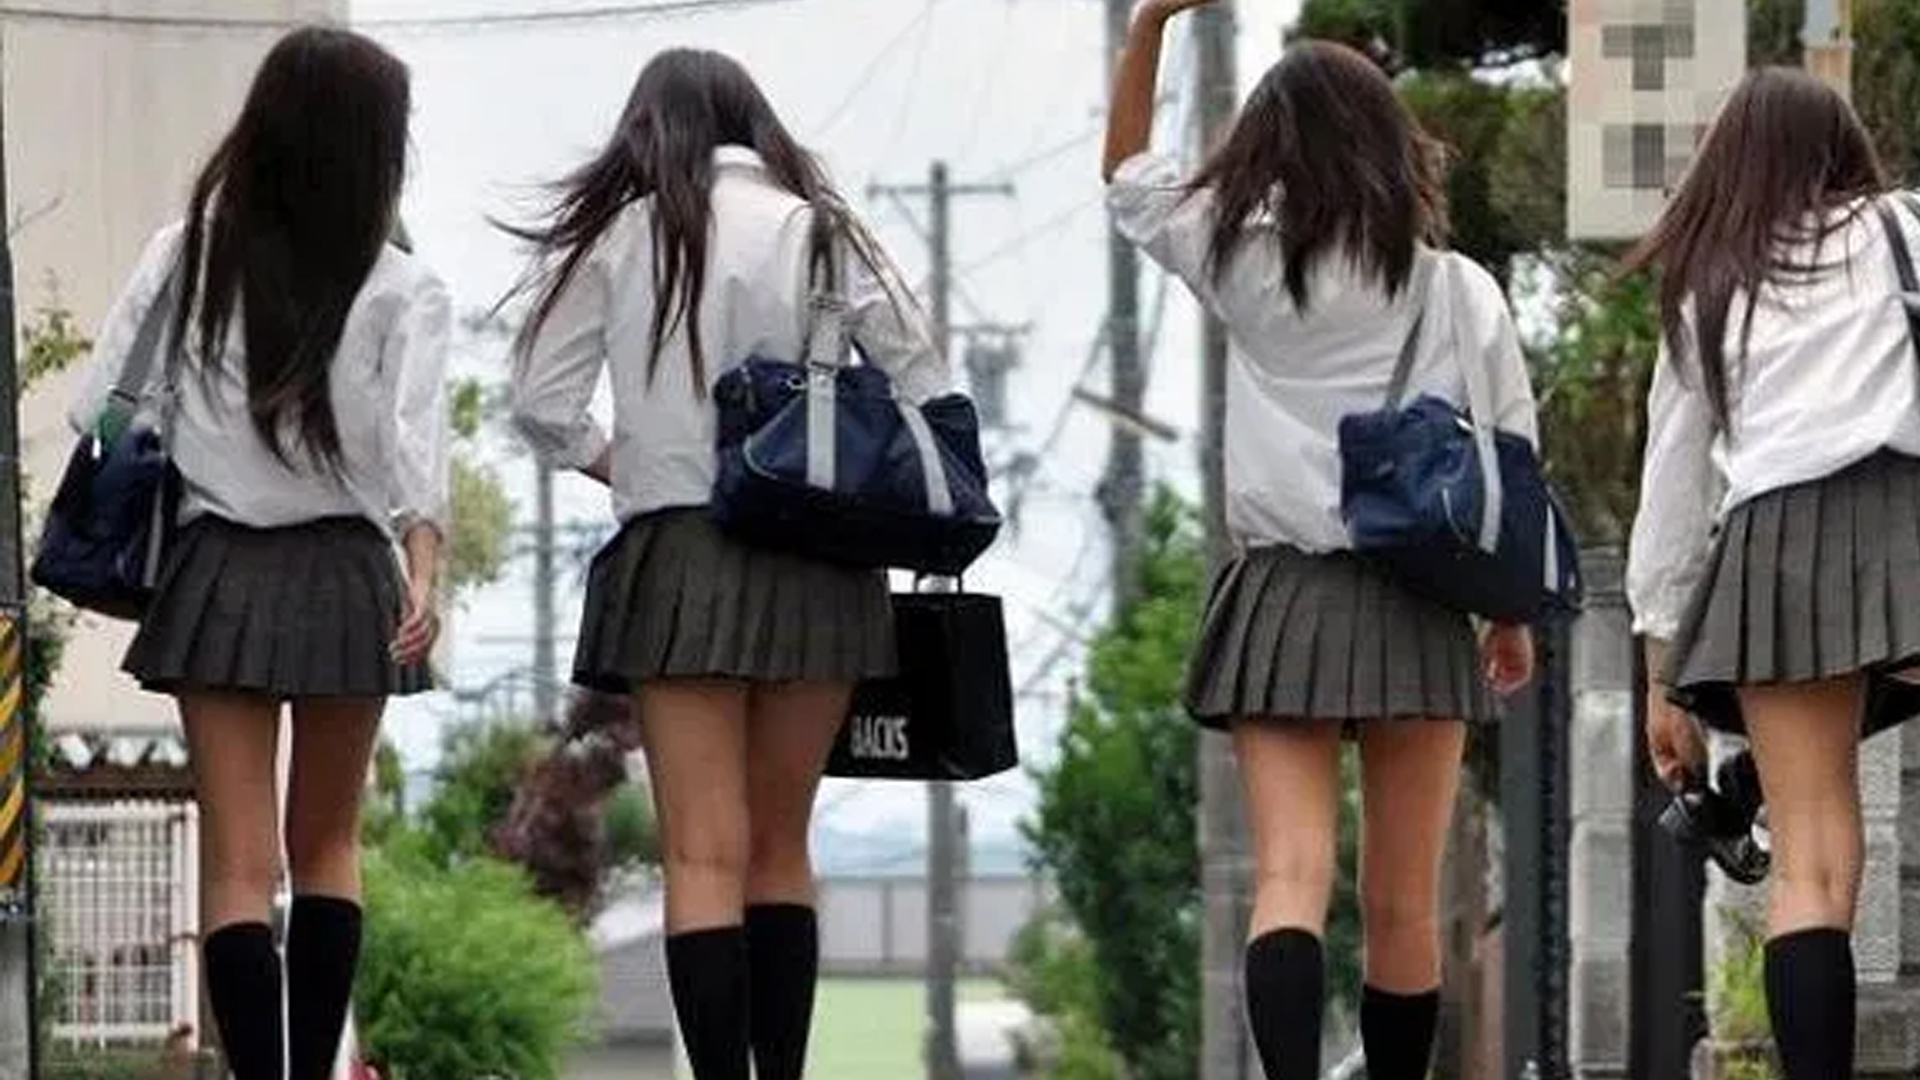 Sexualisation of young girls in Japan